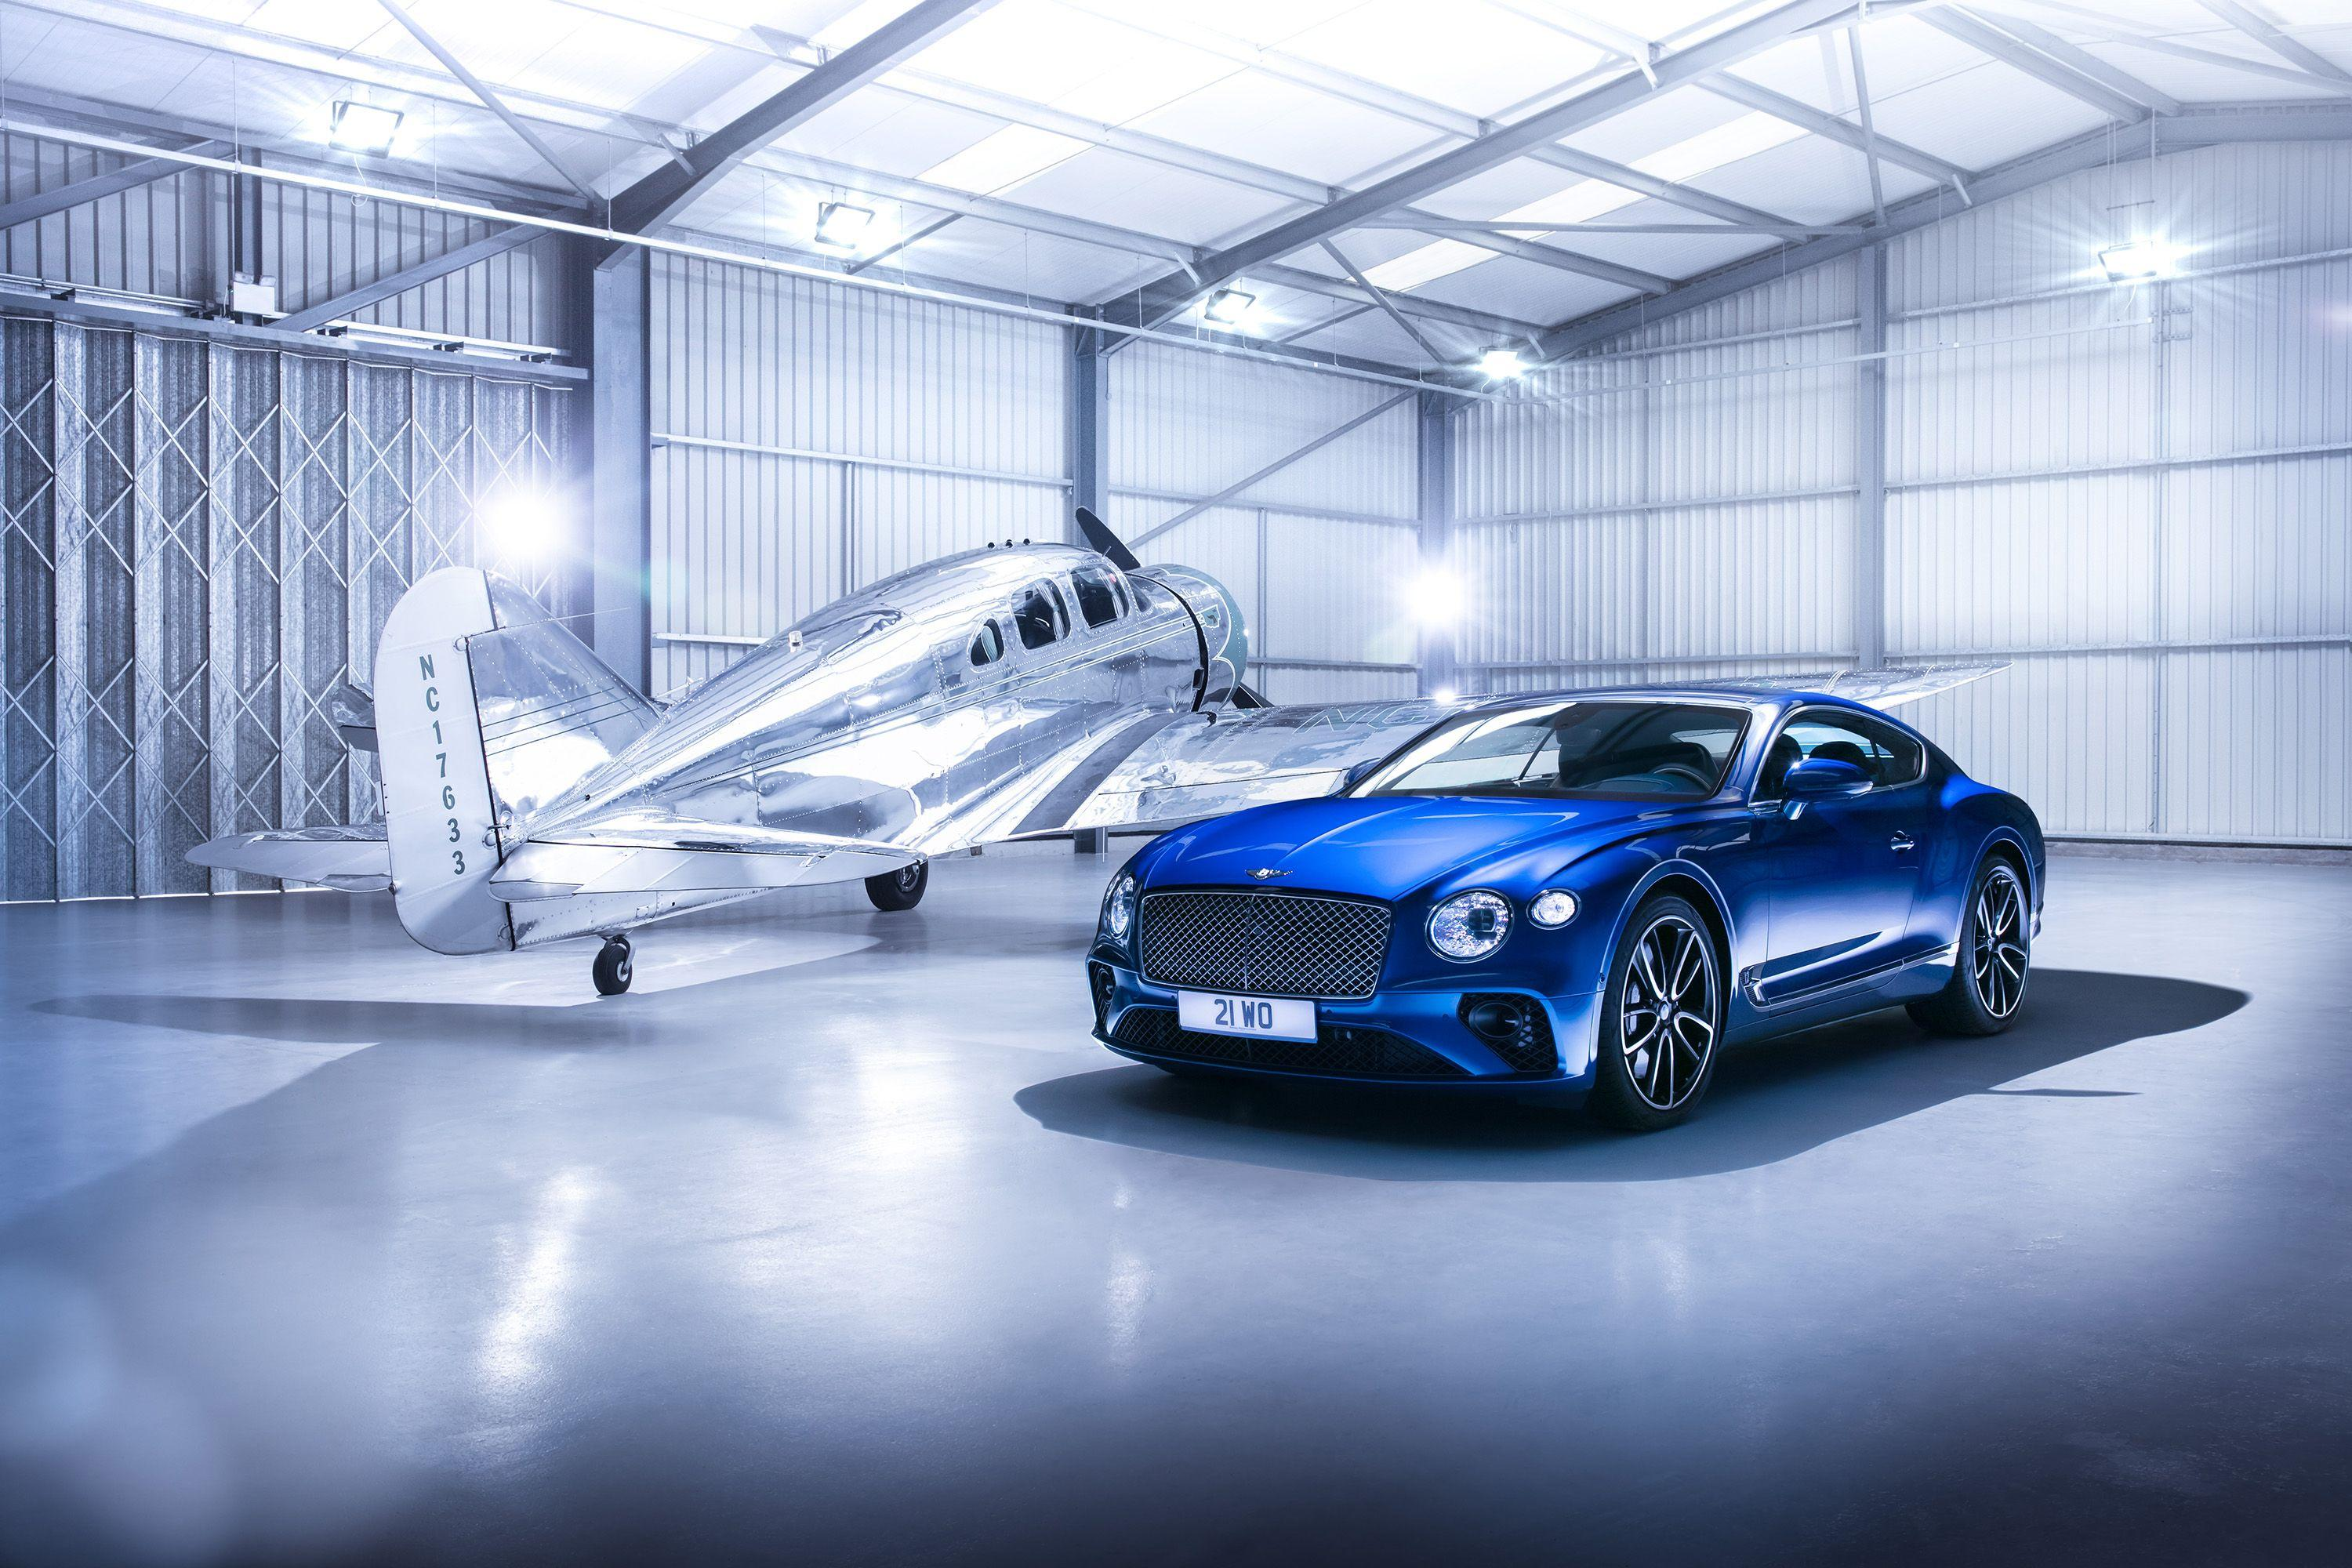 Wallpaper Bentley Continental GT, 2018, HD, Automotive / Cars, #9833